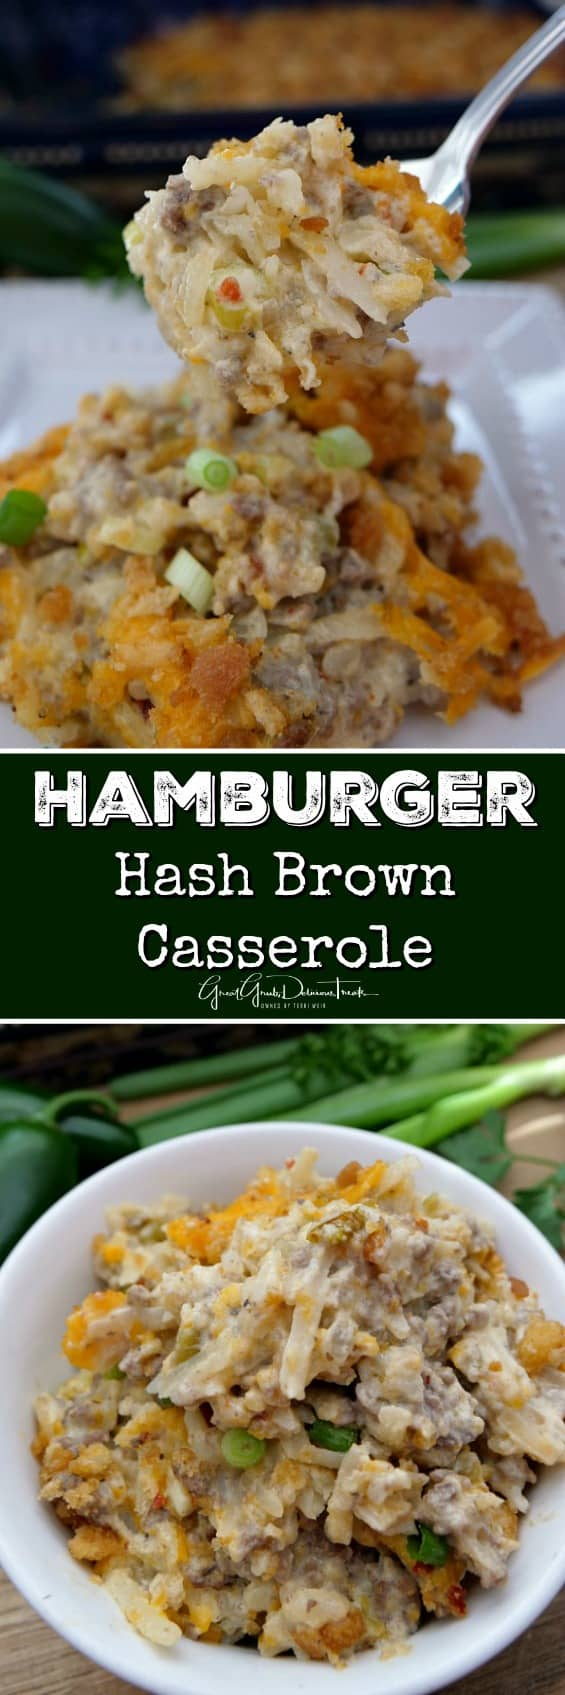 Hamburger Hash Brown Casserole